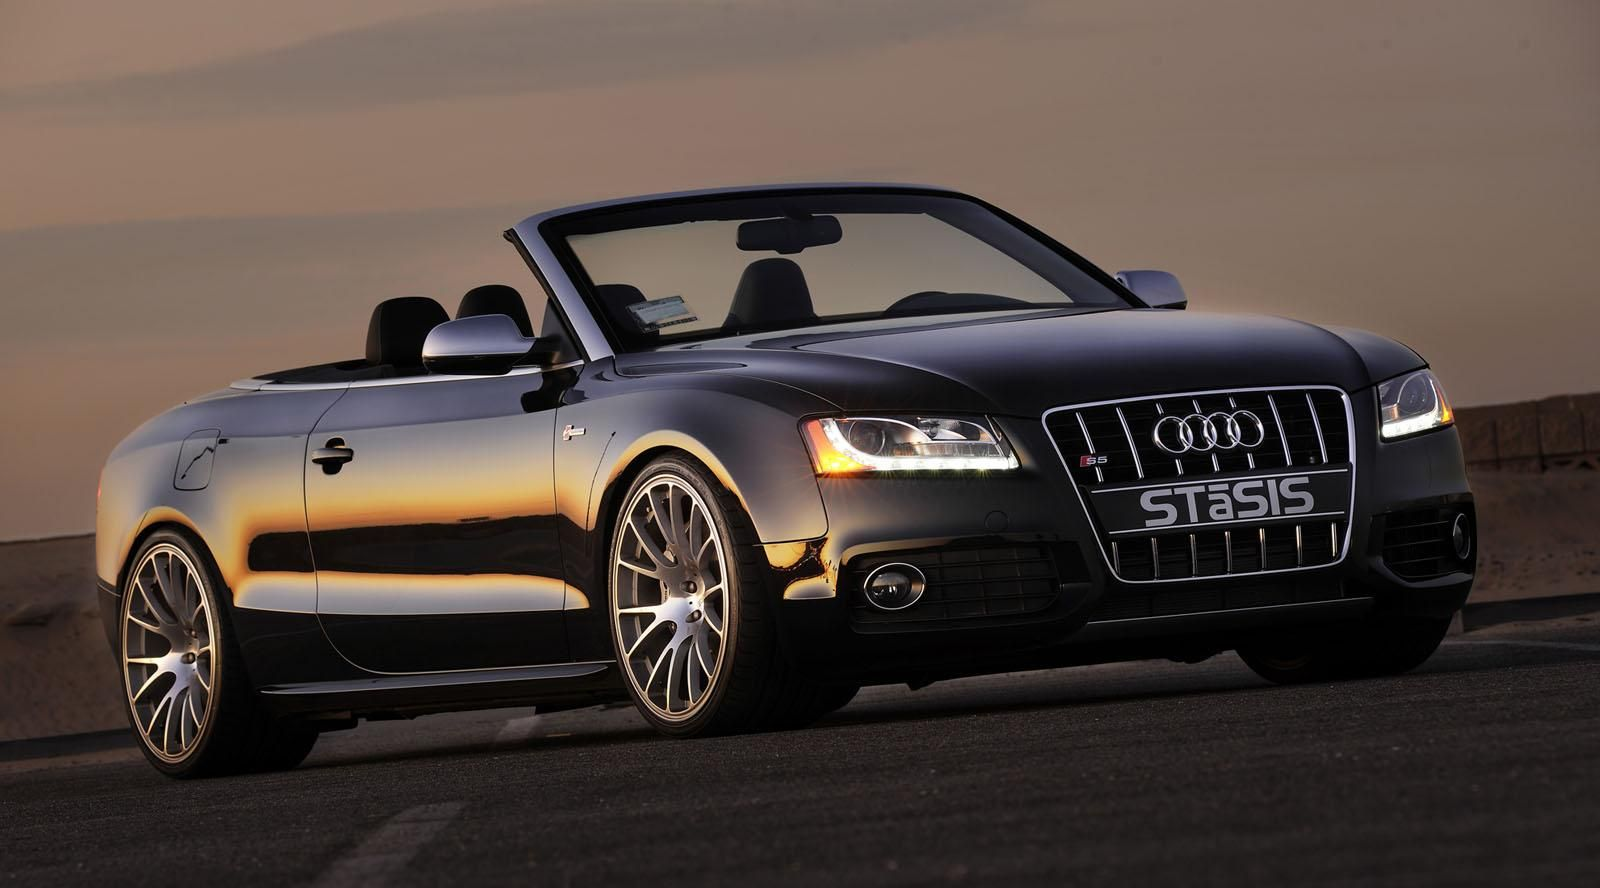 Just picked up the audi s5 cabriolet as my new ride meet my new mid